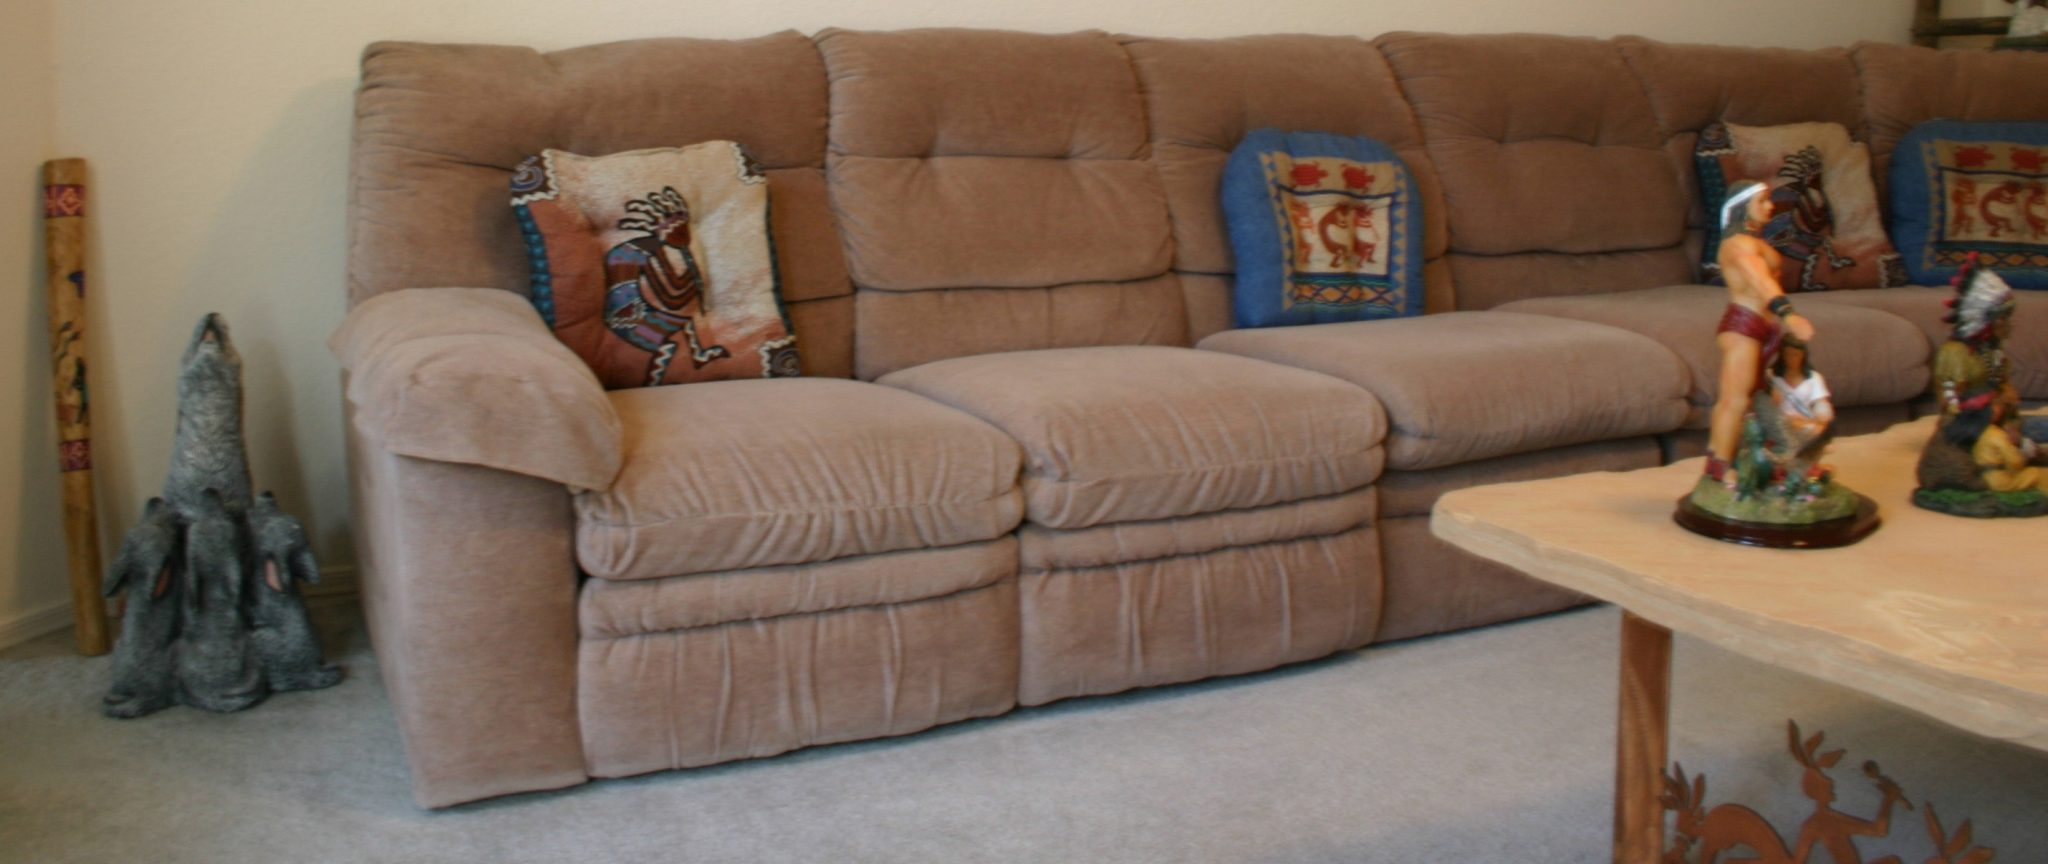 sofa donation nashville bed donate couch pick up a free home